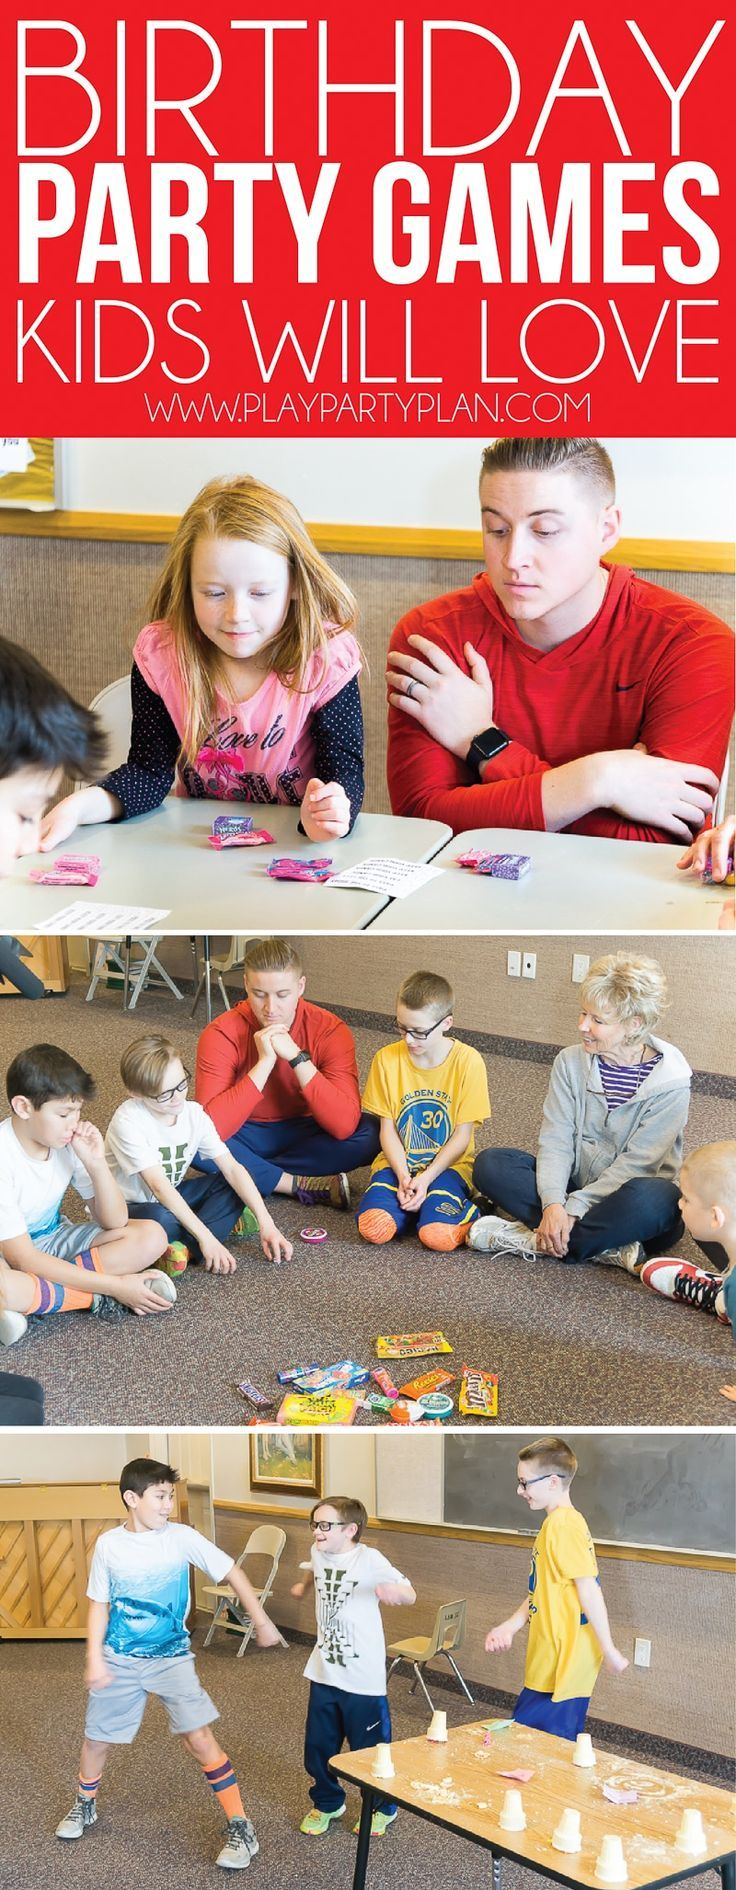 Hilarious Birthday Party Games Birthday party games for